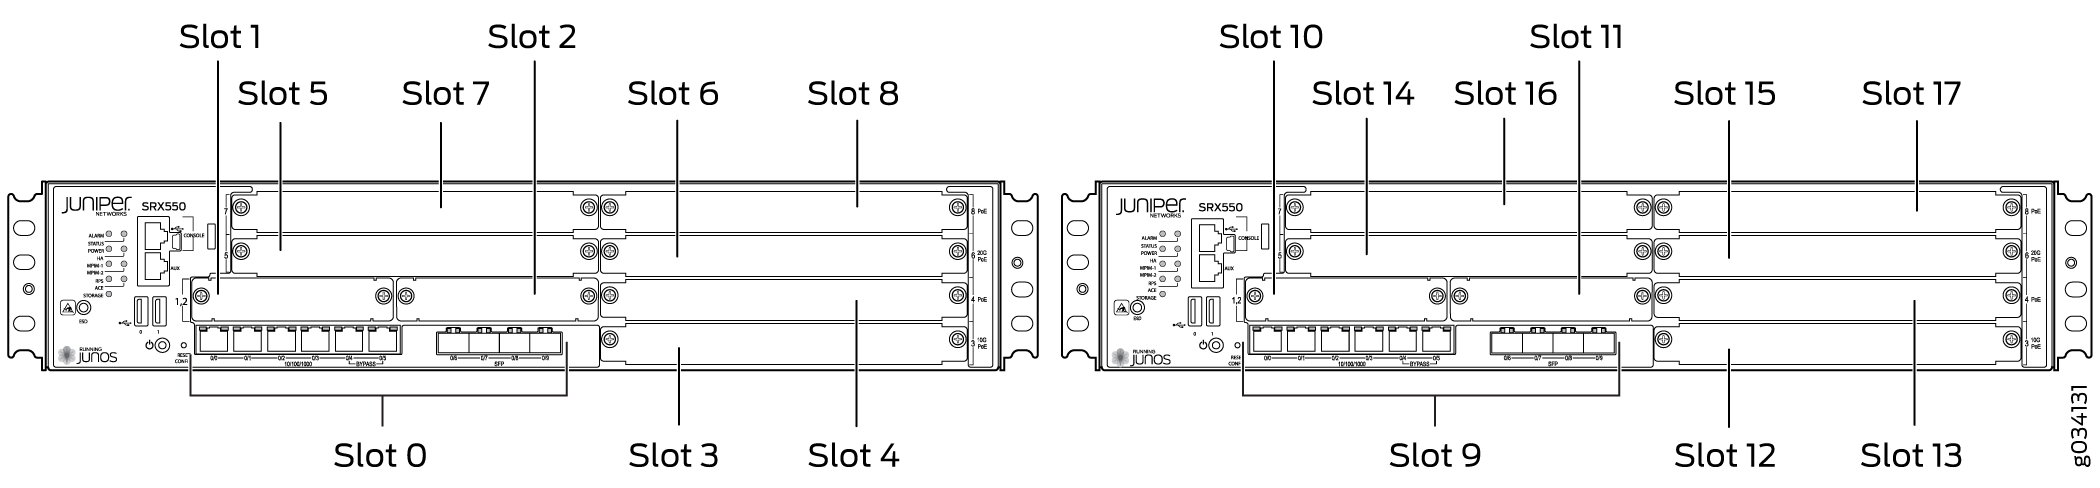 Slot Numbering in SRX550M Chassis Cluster